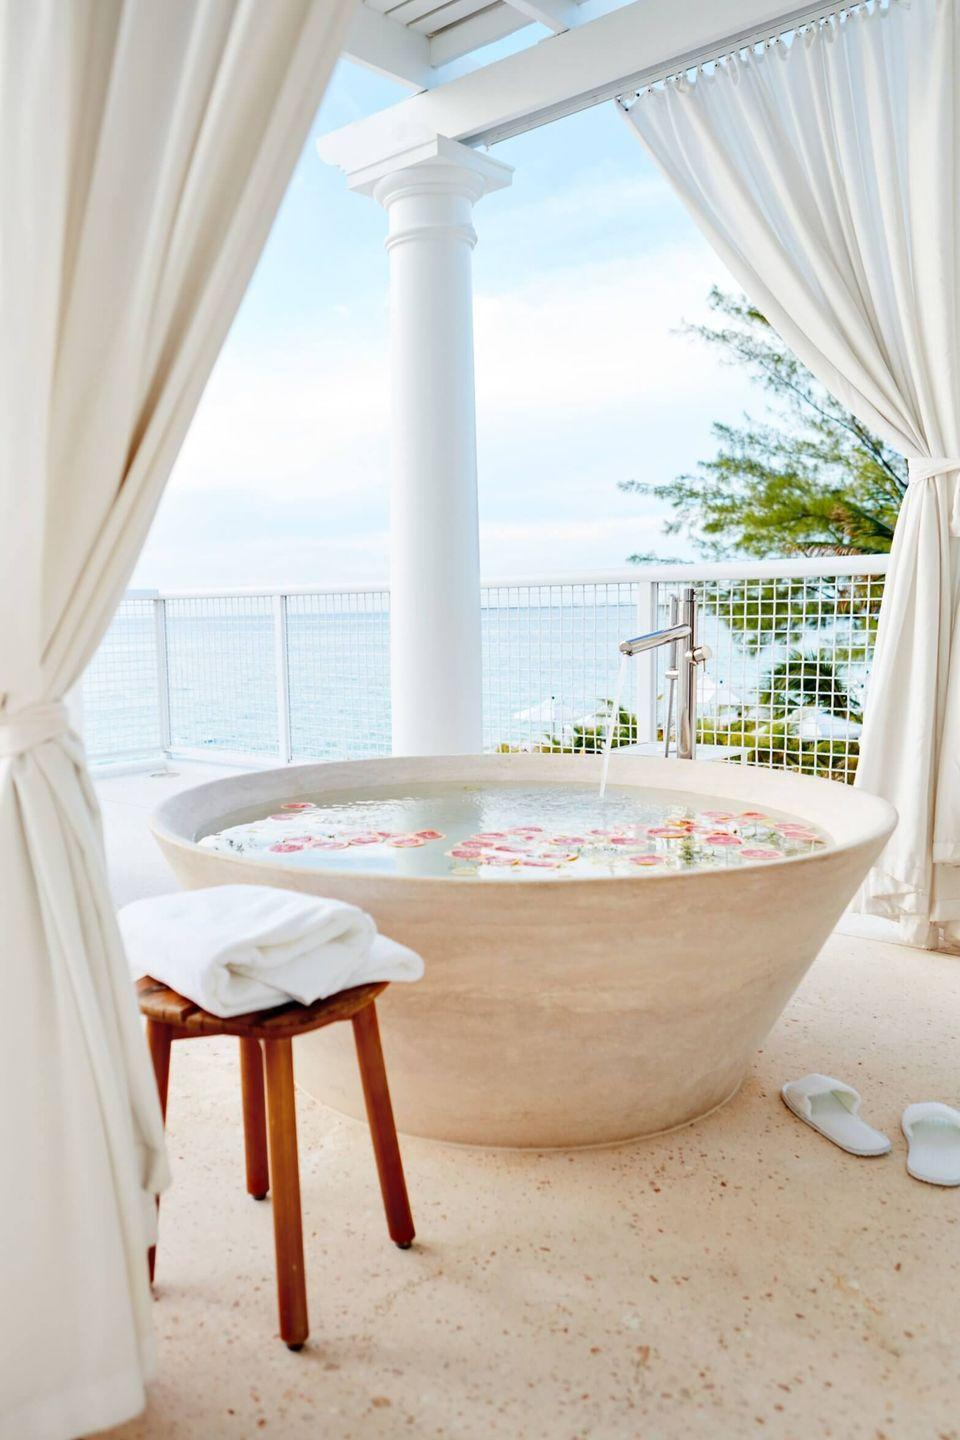 "<p>Grand Cayman's first boutique hotel is the perfect place for social butterflies to enjoy a week of wellness. <a href=""https://palmheights.com/"" rel=""nofollow noopener"" target=""_blank"" data-ylk=""slk:Palm Heights"" class=""link rapid-noclick-resp"">Palm Heights</a> views wellness as a social activity and fosters this notion with a world-class workout program; regenerative well-being for the mind, gut, and skin; and exciting recreational activities and excursions. However, personalized experiences and small, outdoor classes are currently being offered in light of social distancing.</p><p>The hotel also features chefs and artists in-residency—along with an impressive library—to help cultivate the mind as much as a healthy body. At the end of each day, Palm Heights's sumptuous suites are full of all the luxe amenities one could dream of to get the rest you need to emerge refreshed.</p>"